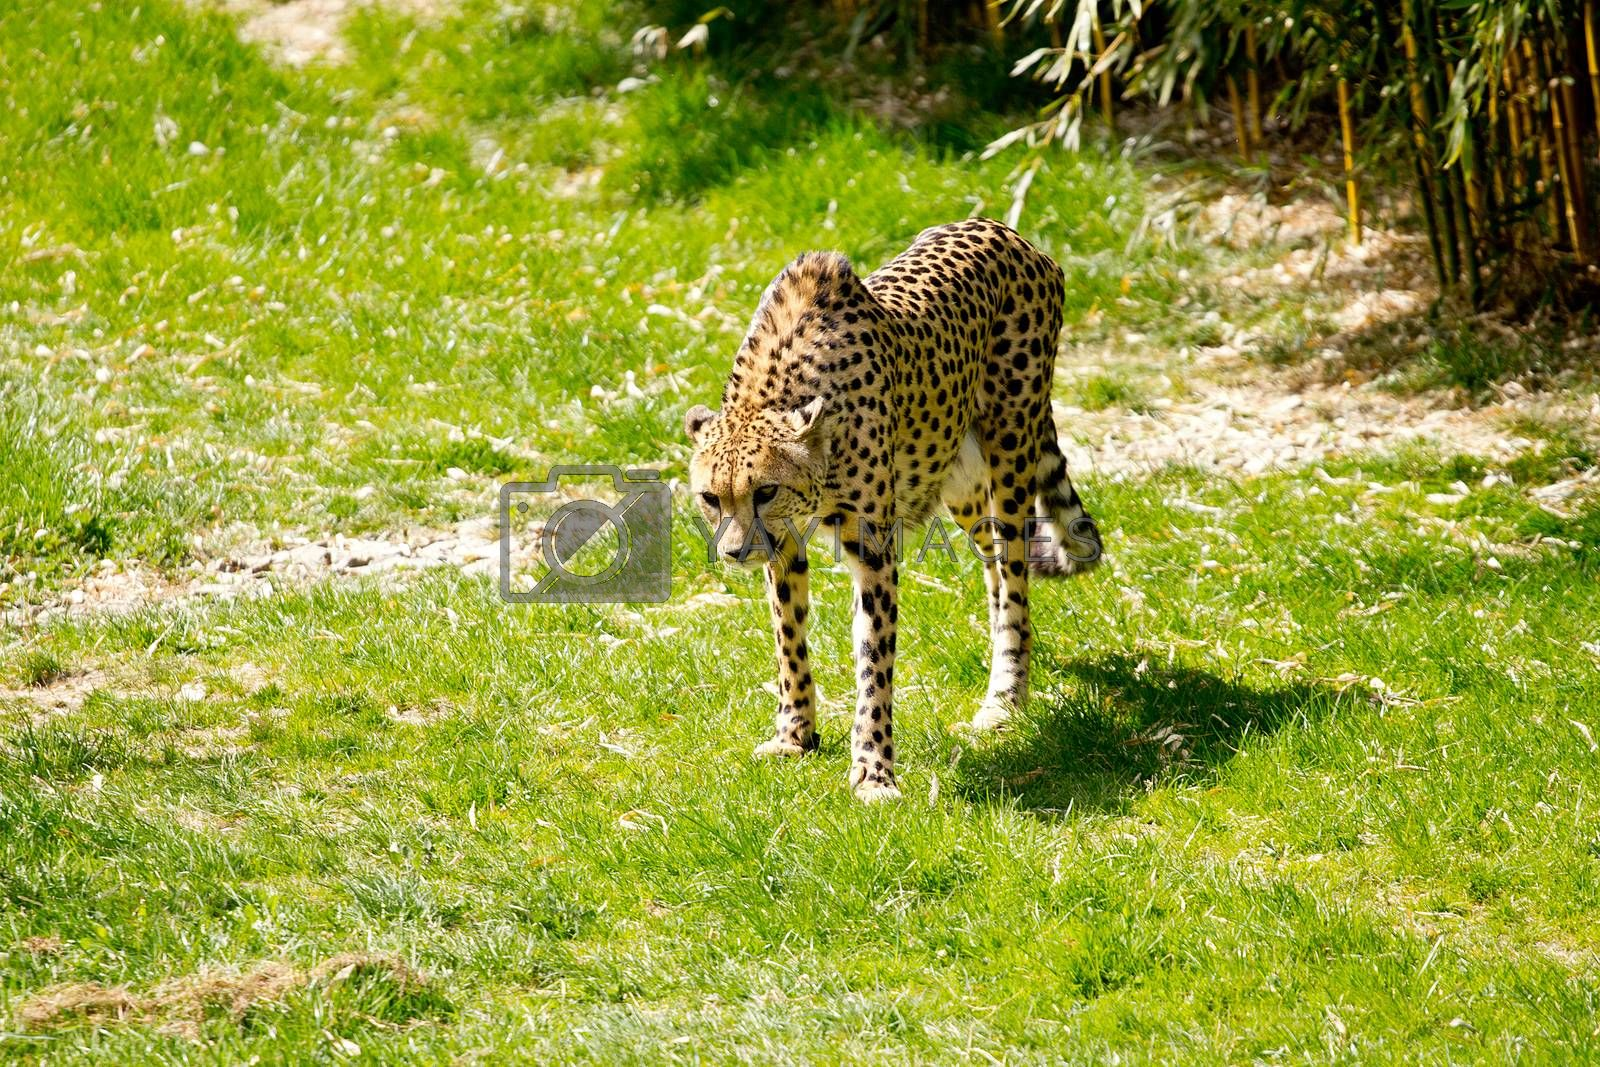 Cheetah hungry for meat